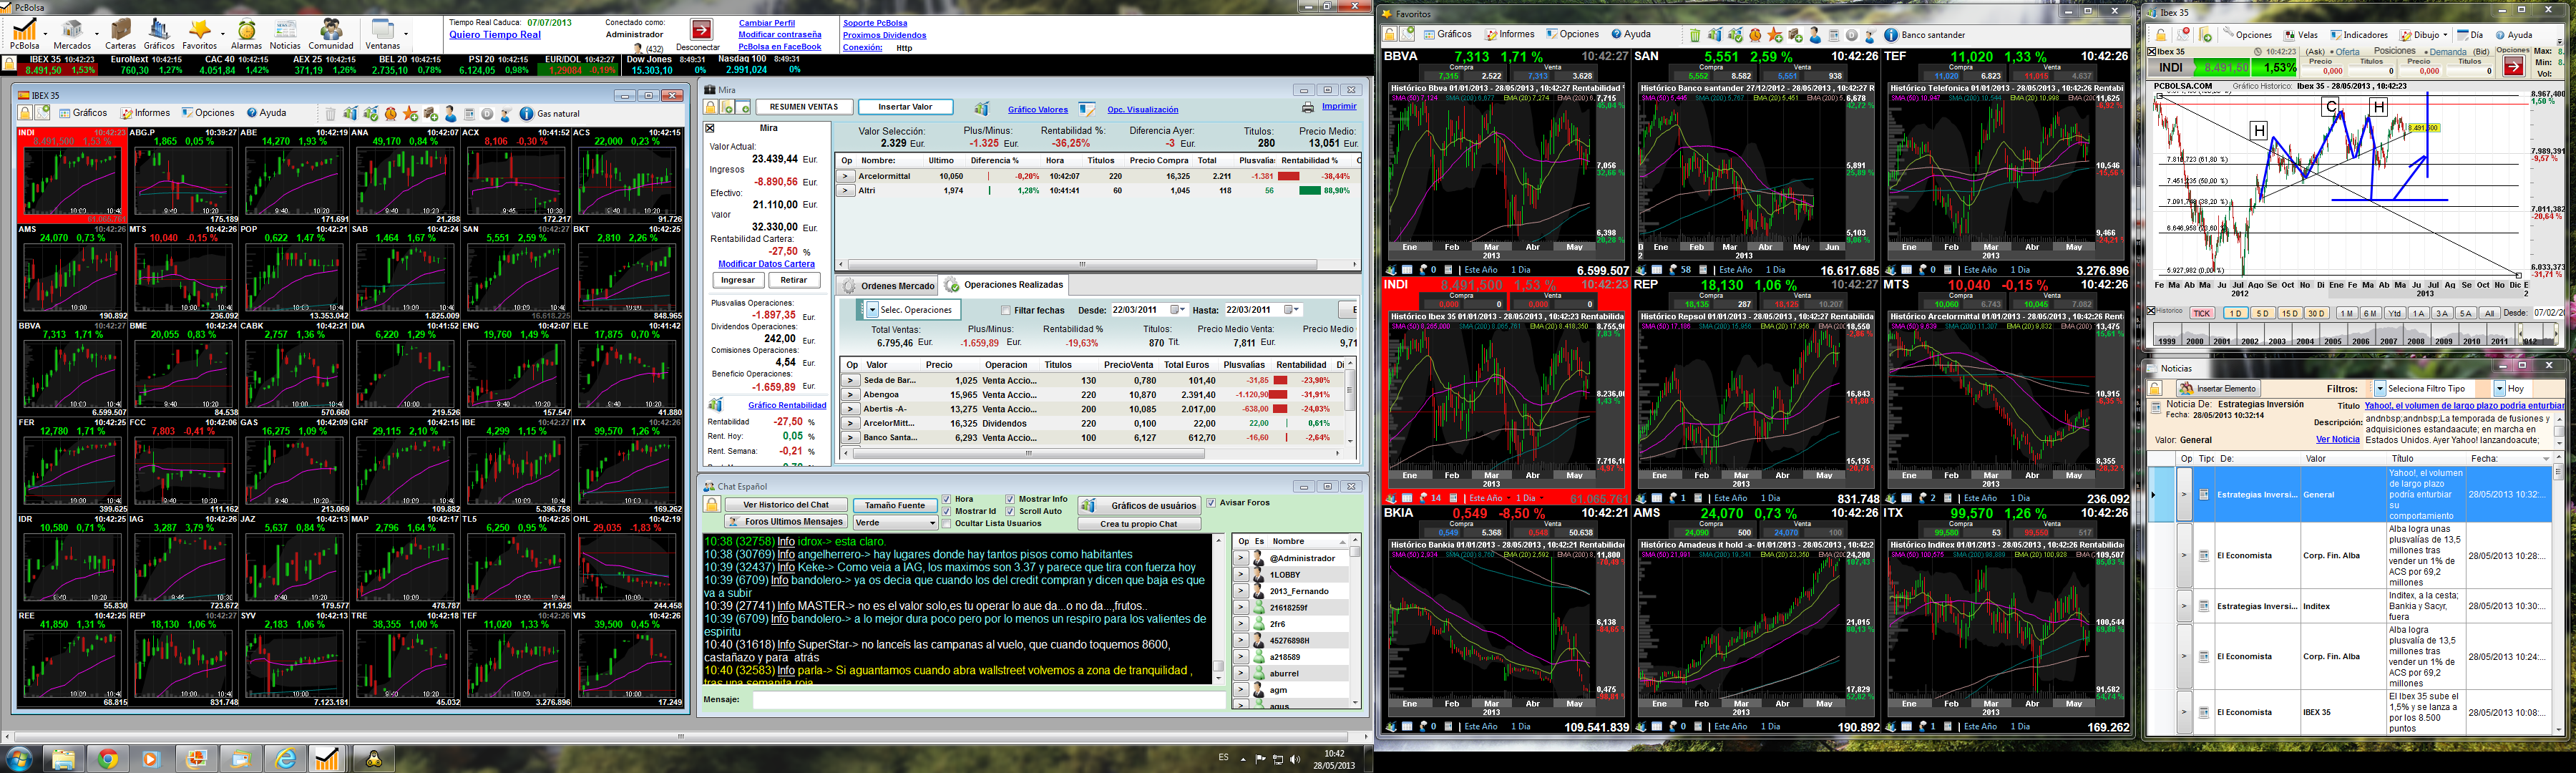 Software para analisis tecnico forex